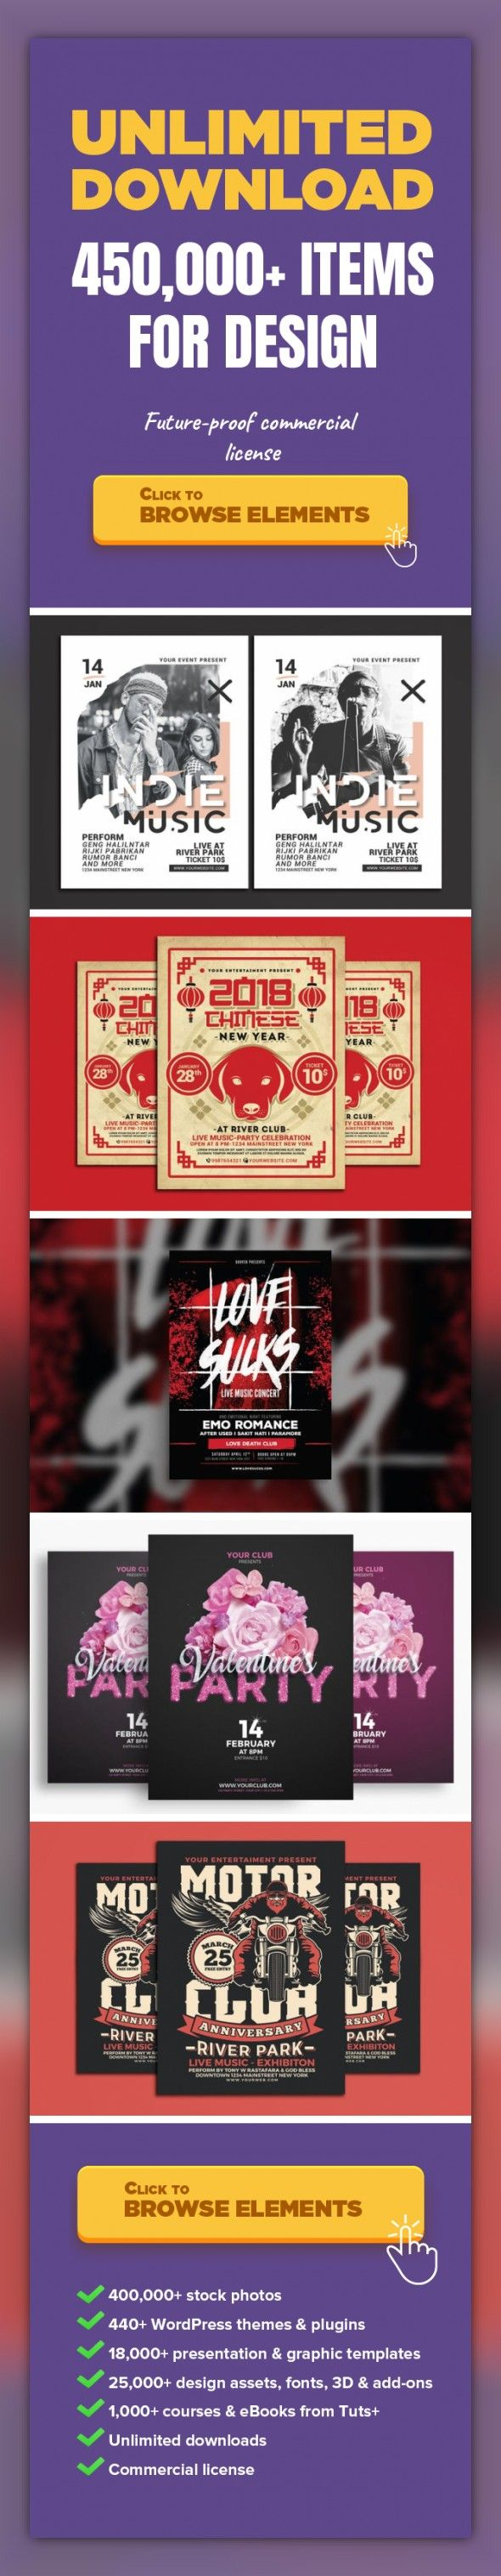 Indie Music Flyer Graphic Templates, Print Templates alternative, band, concert, concert, flyer, festival, gig, gigs, guitar, modern, pop, rock, sound, indie, music   SPECIFICATIONS : Psd Files CS 5 Dimensions: 8.27x11.69 in size with bleeds Resolution: 300 dpi CMYK / ready for print Editable fonts/text Easy to change colors Well Organize Layer Model Not Includeyou can find font used at readme fil...